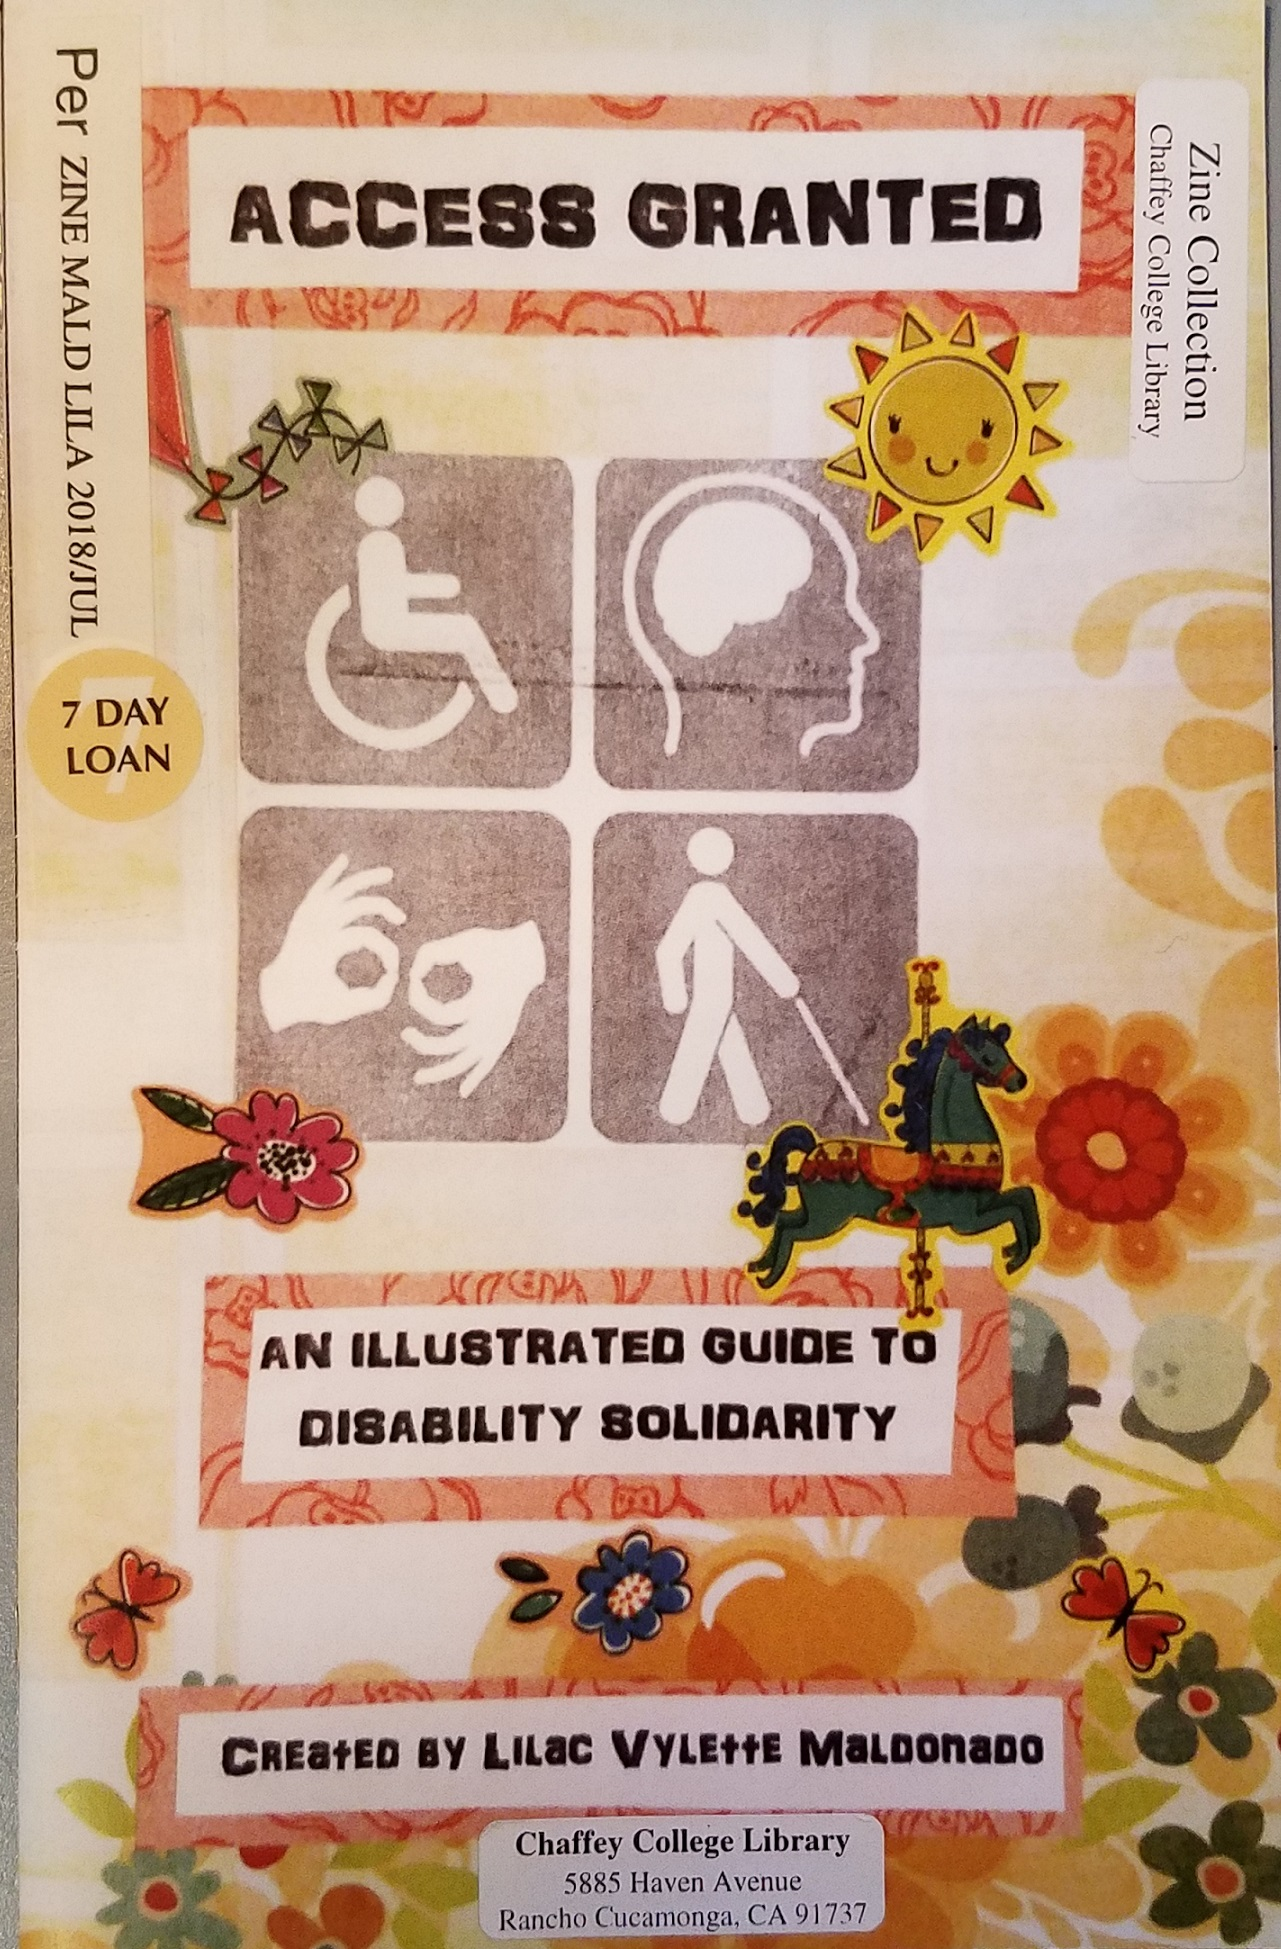 Access granted : an illustrated guide to disability solidarity